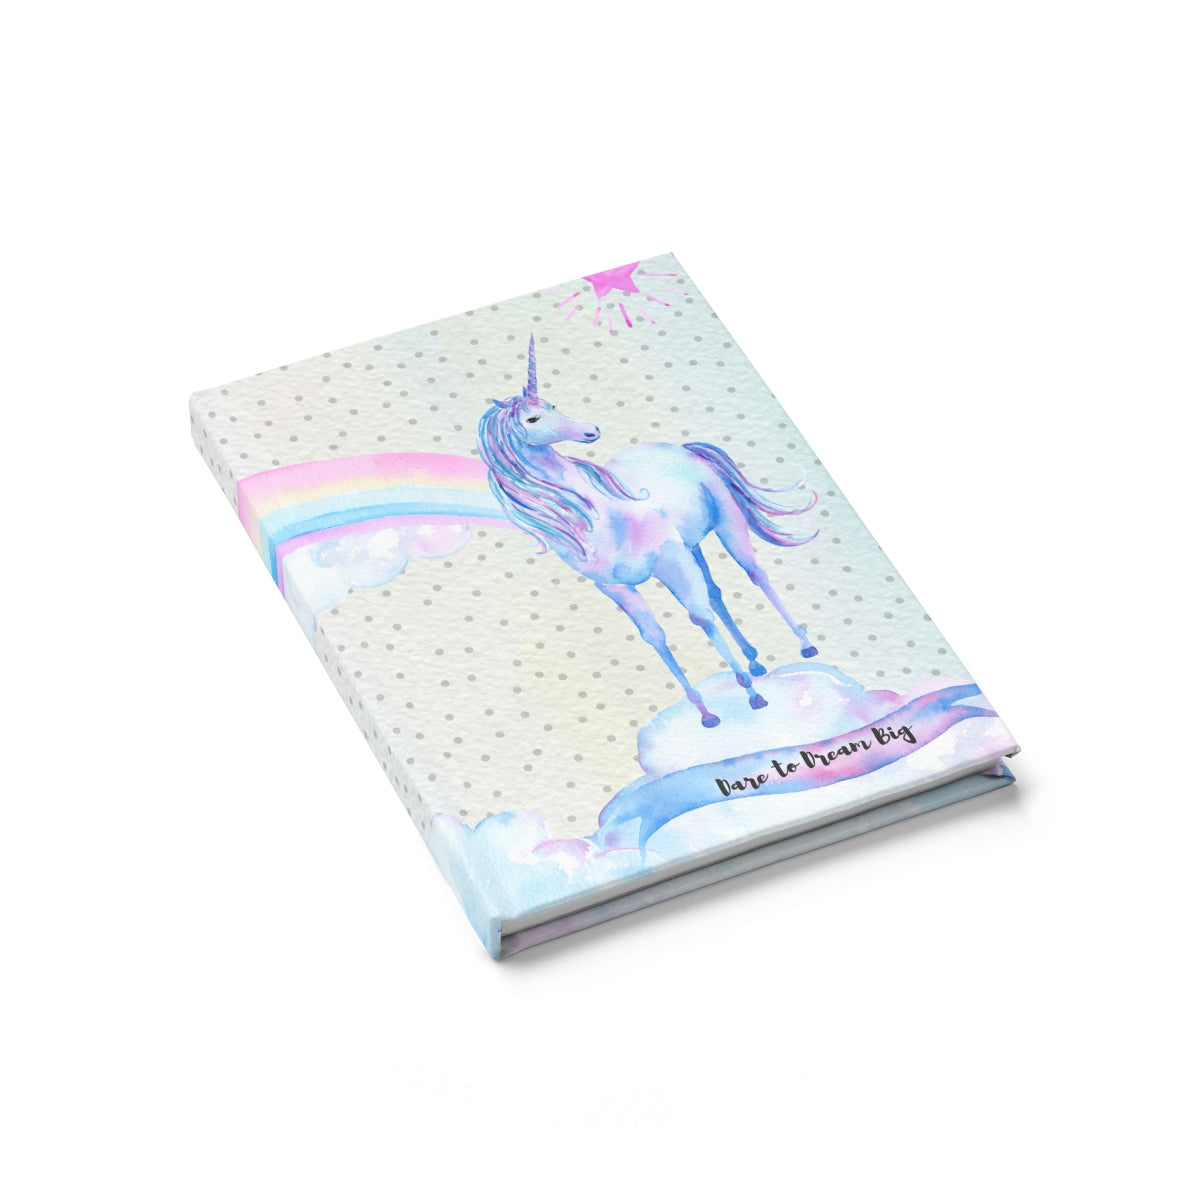 Unicorn Polka Dot Dare To Dream Big Journal - Ruled Line - Journal - Paper Products